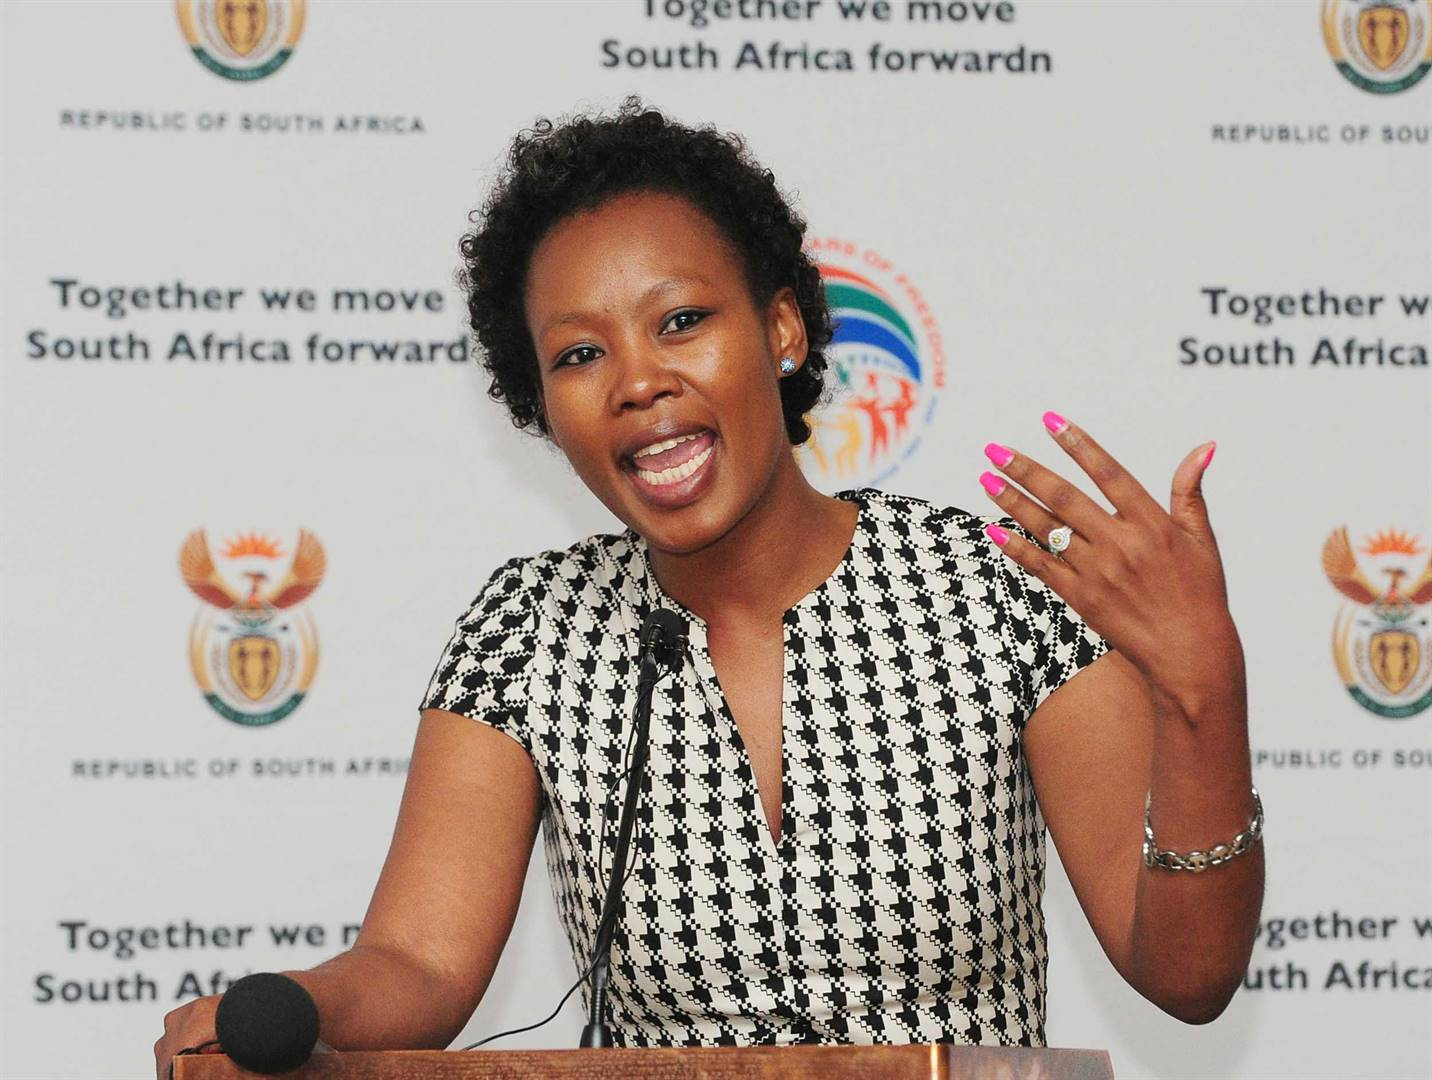 Stella Ndabeni-Abrahams at war with the post office | Citypress - News24